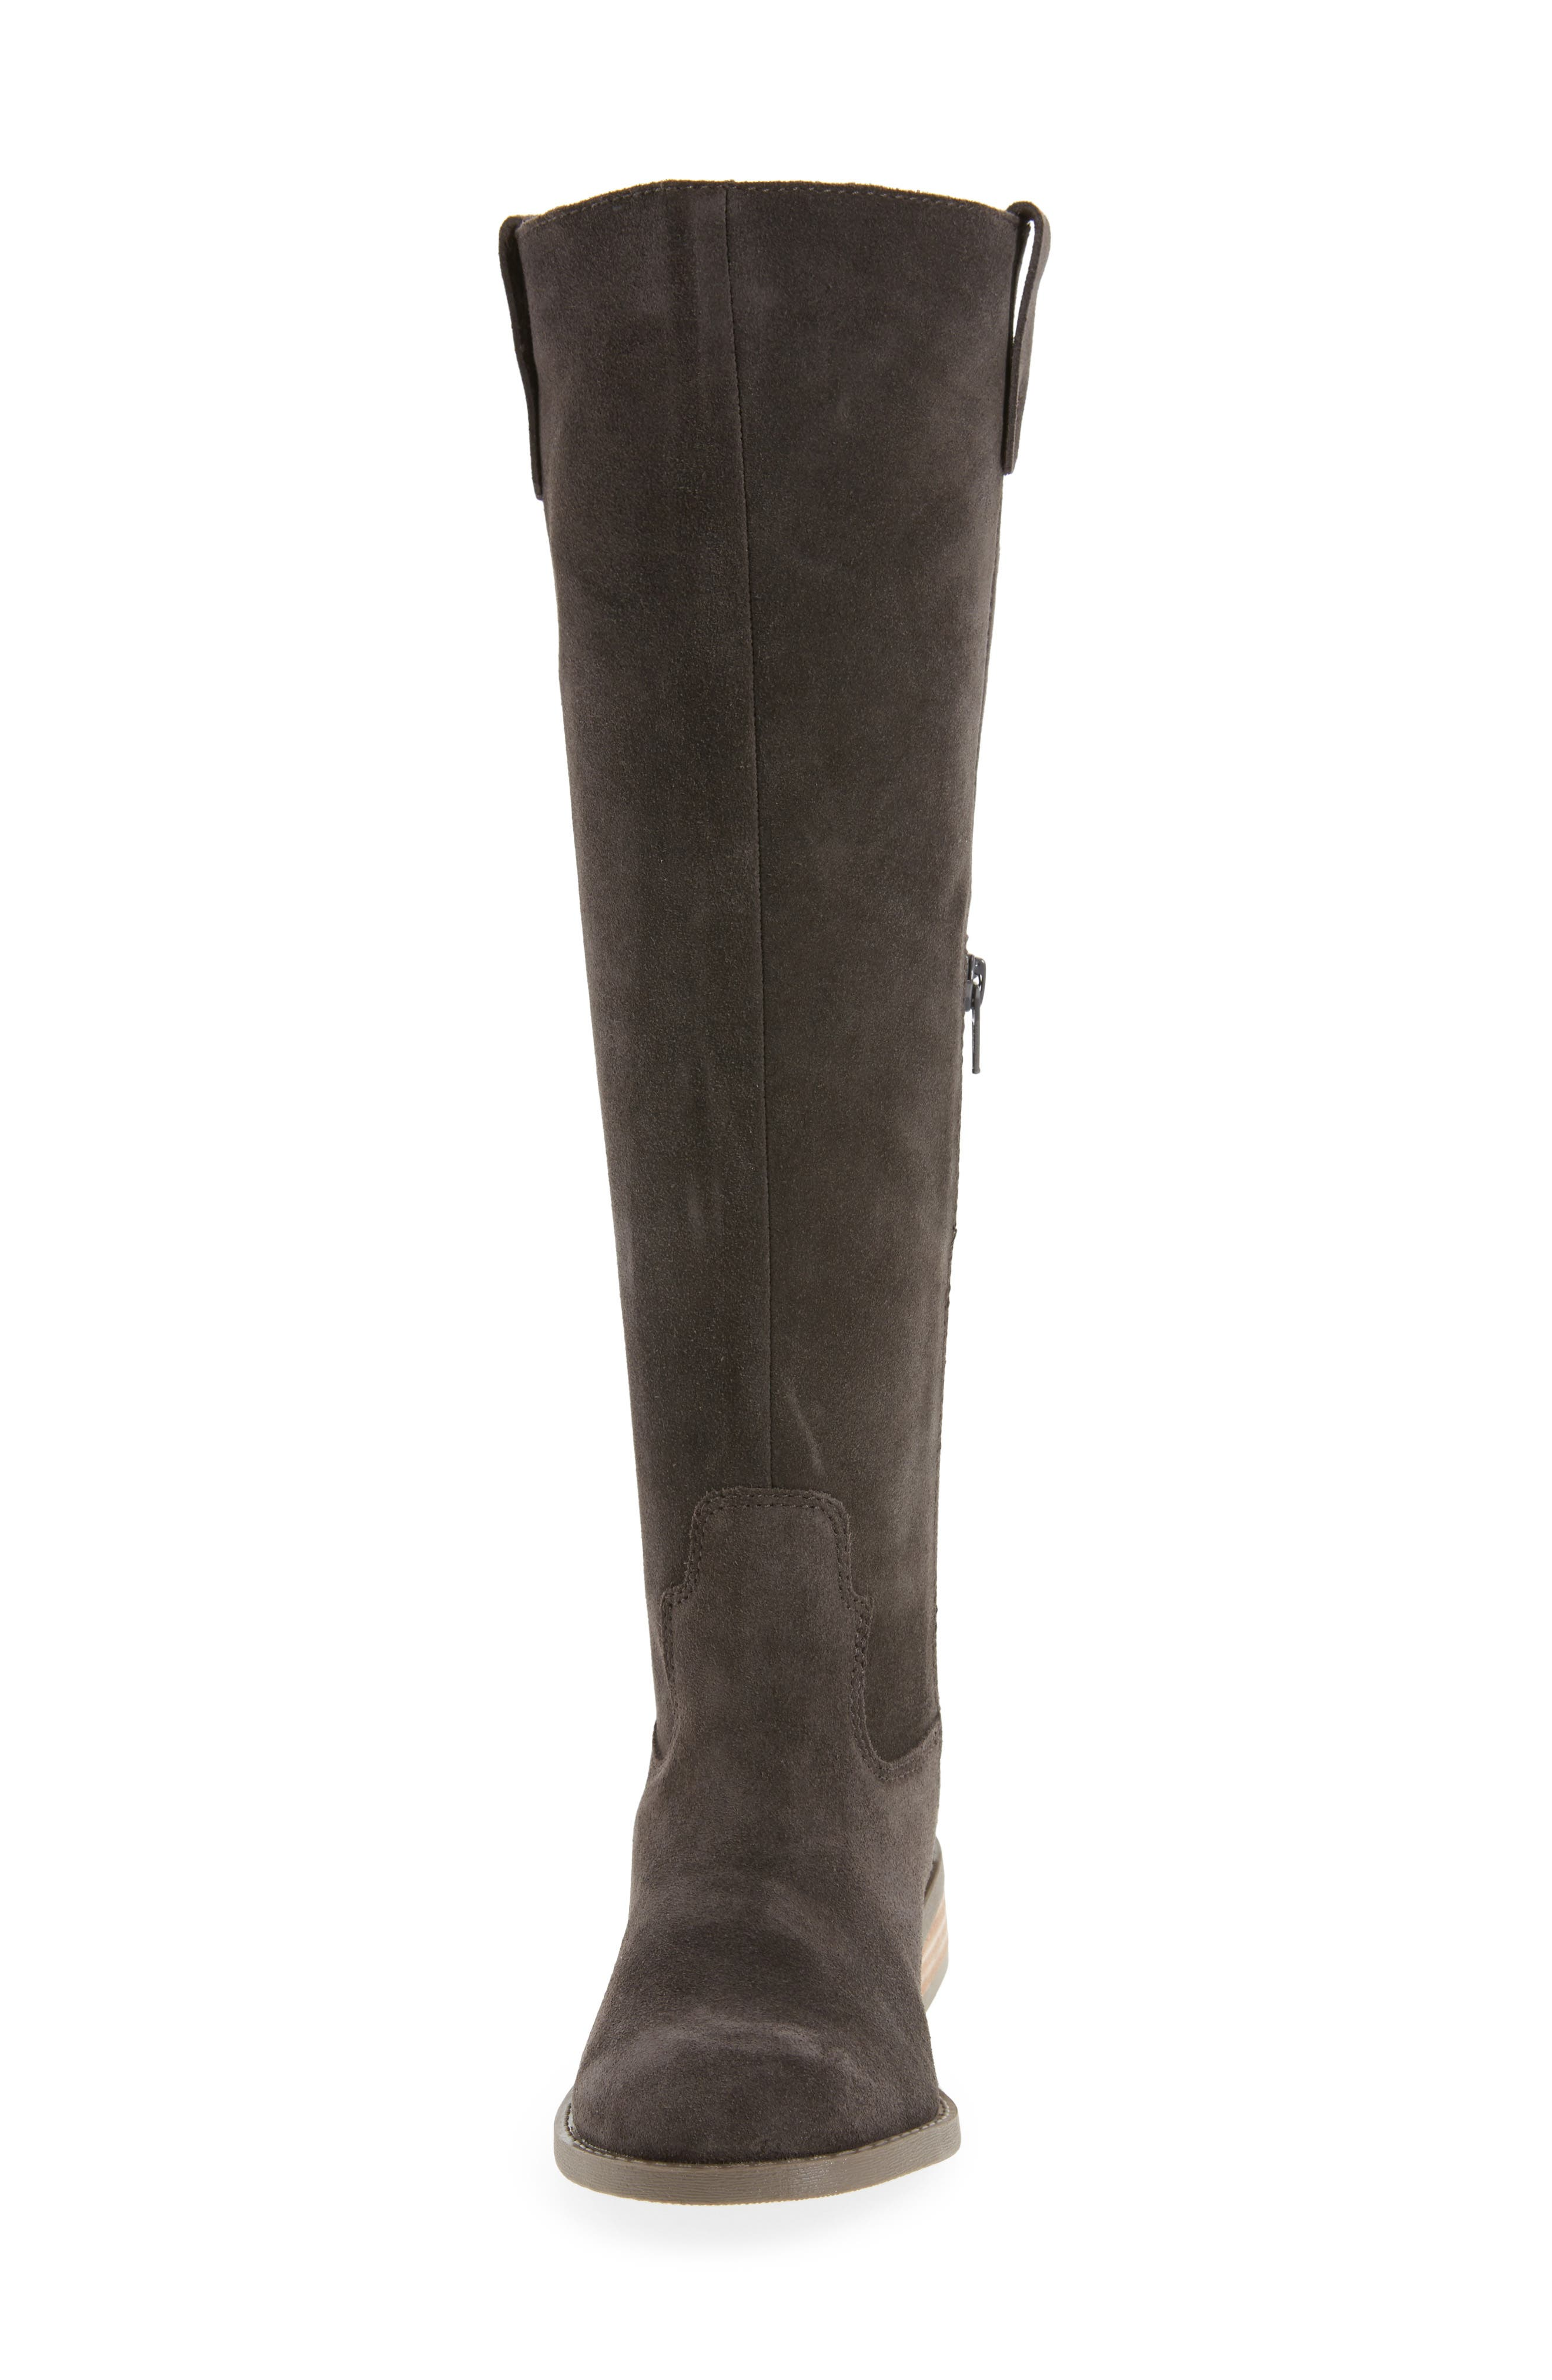 Hawn Knee High Boot,                             Alternate thumbnail 4, color,                             021